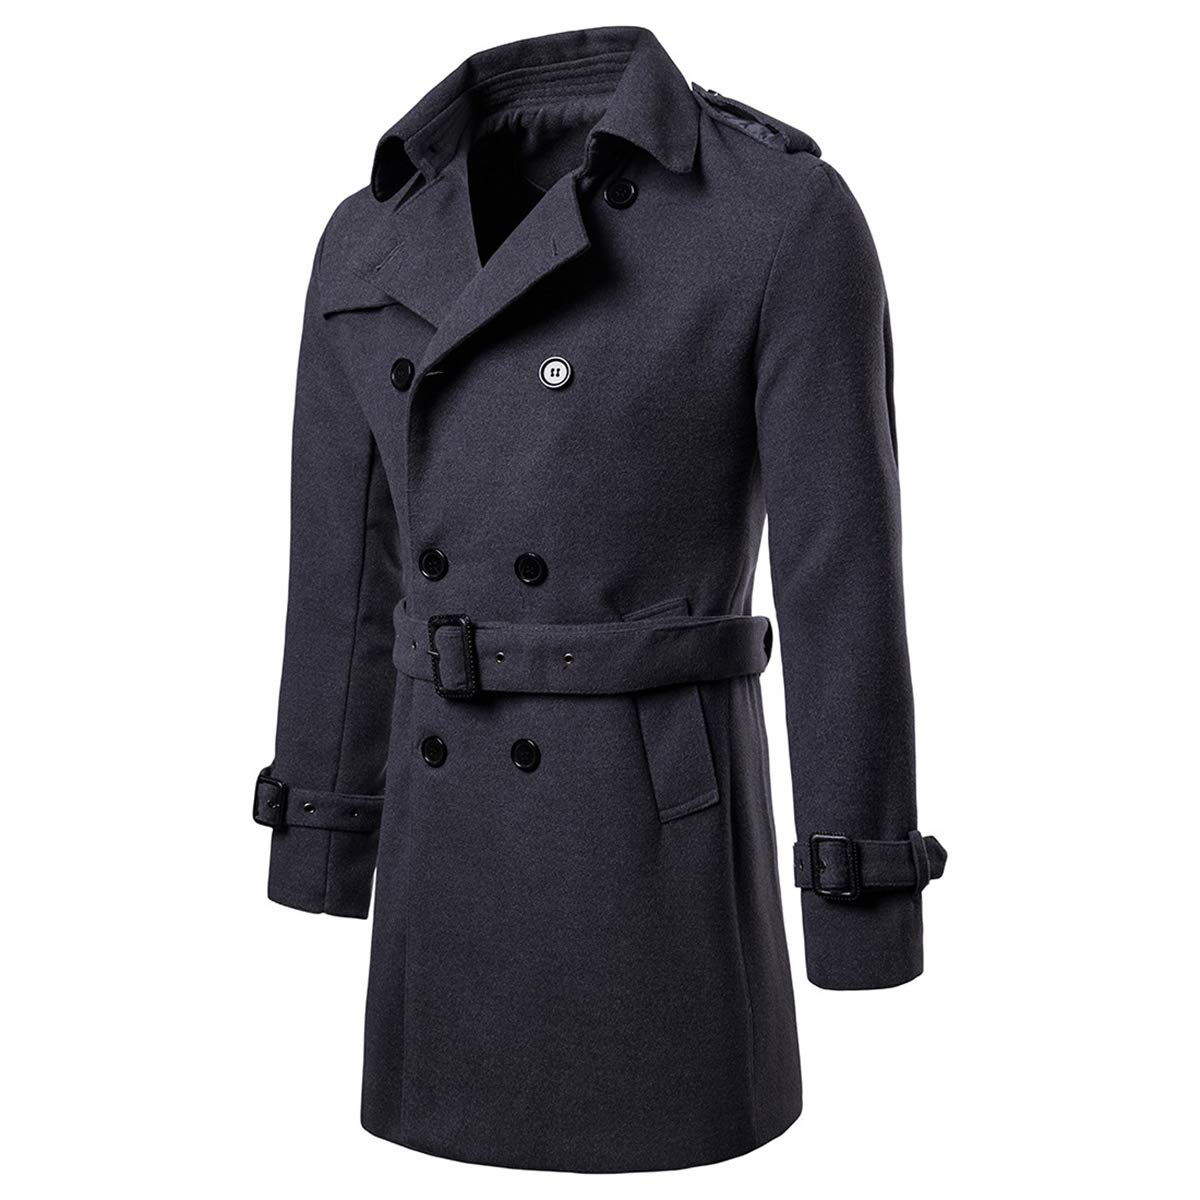 AOWOFS Men's Trench Coat Woolen Winter Long Double Breasted Overcoat Slim Fit Warm Pea Coat Dark Grey by AOWOFS